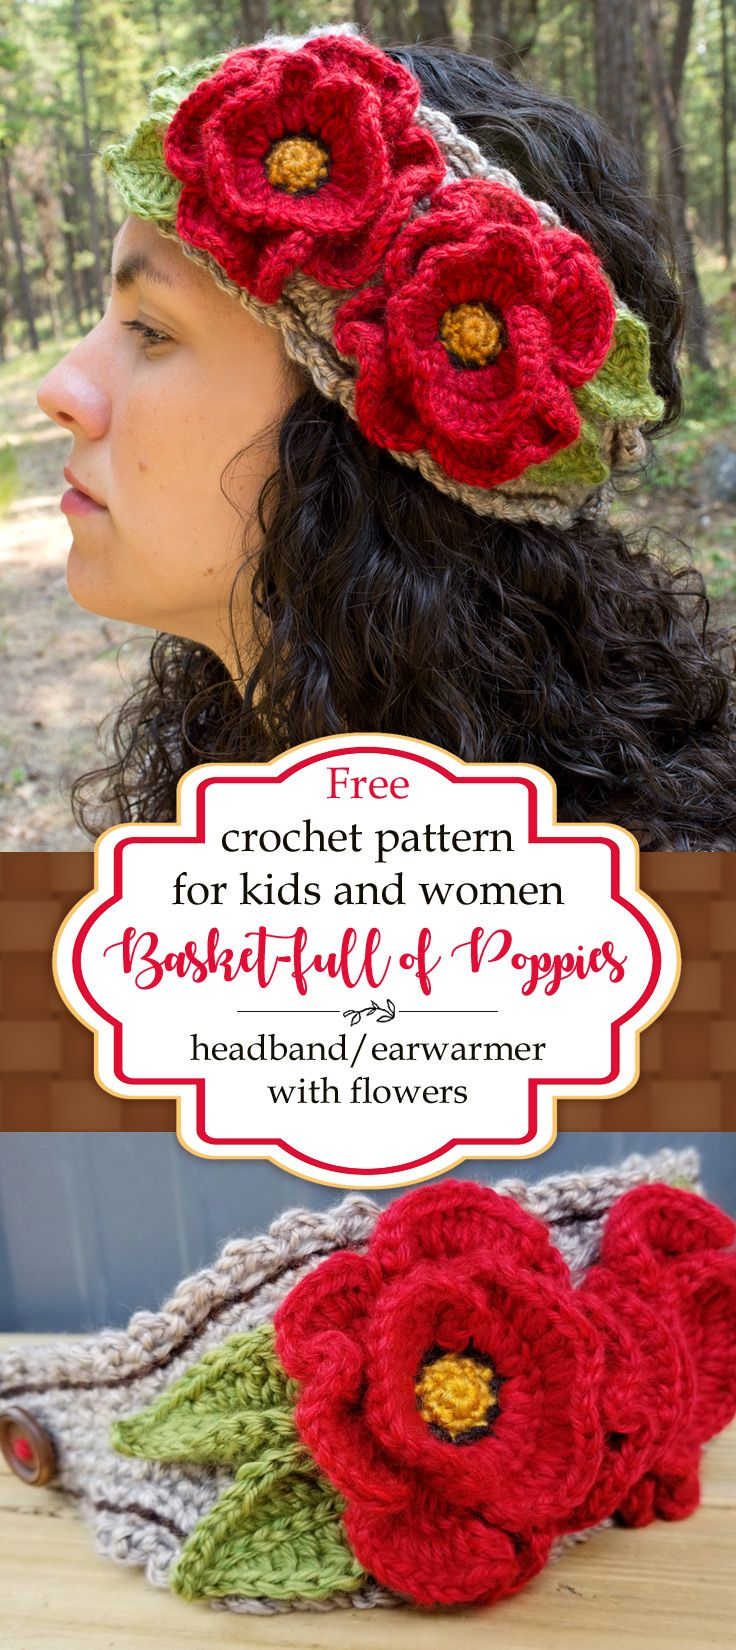 Follow this free crochet pattern and diy a beautiful headband or free crochet pattern for poppy flower headband or earwarmer in kids and teens or womens sizes buttons in the back for easy wear bankloansurffo Image collections